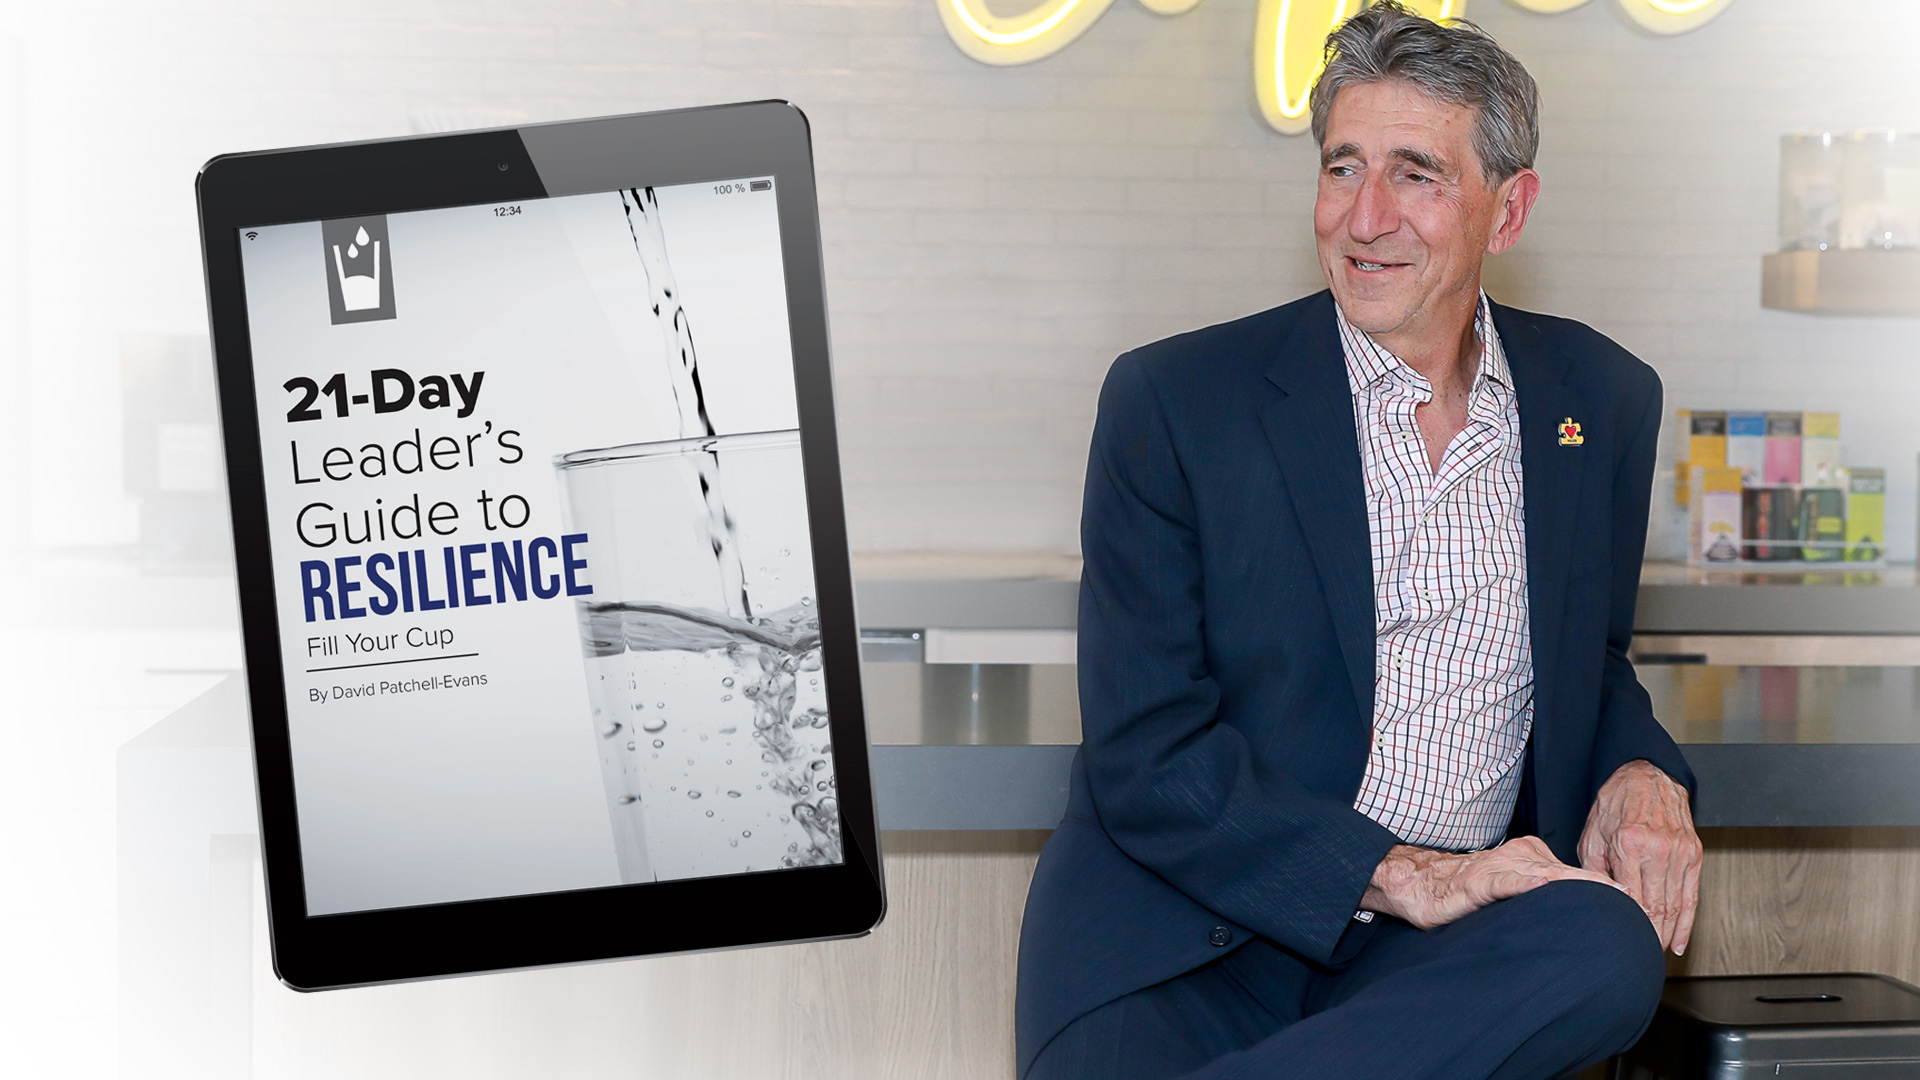 David Patchell Evans sitting gracefully next to a tablet that says 21-Day Leader's Guide to Resilience